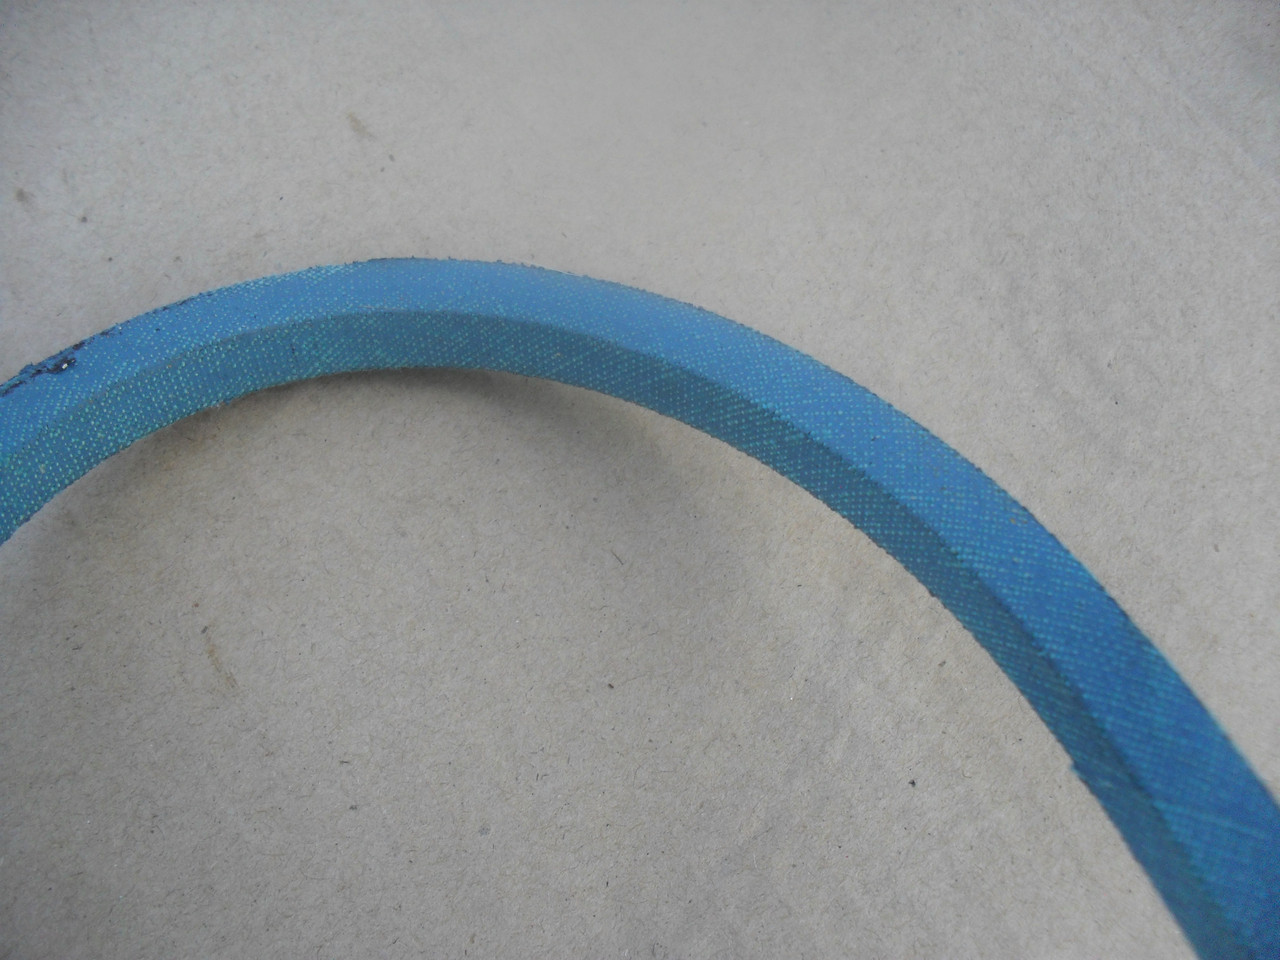 SIMPLICITY MANUFACTURING 122146 made with Kevlar Replacement Belt